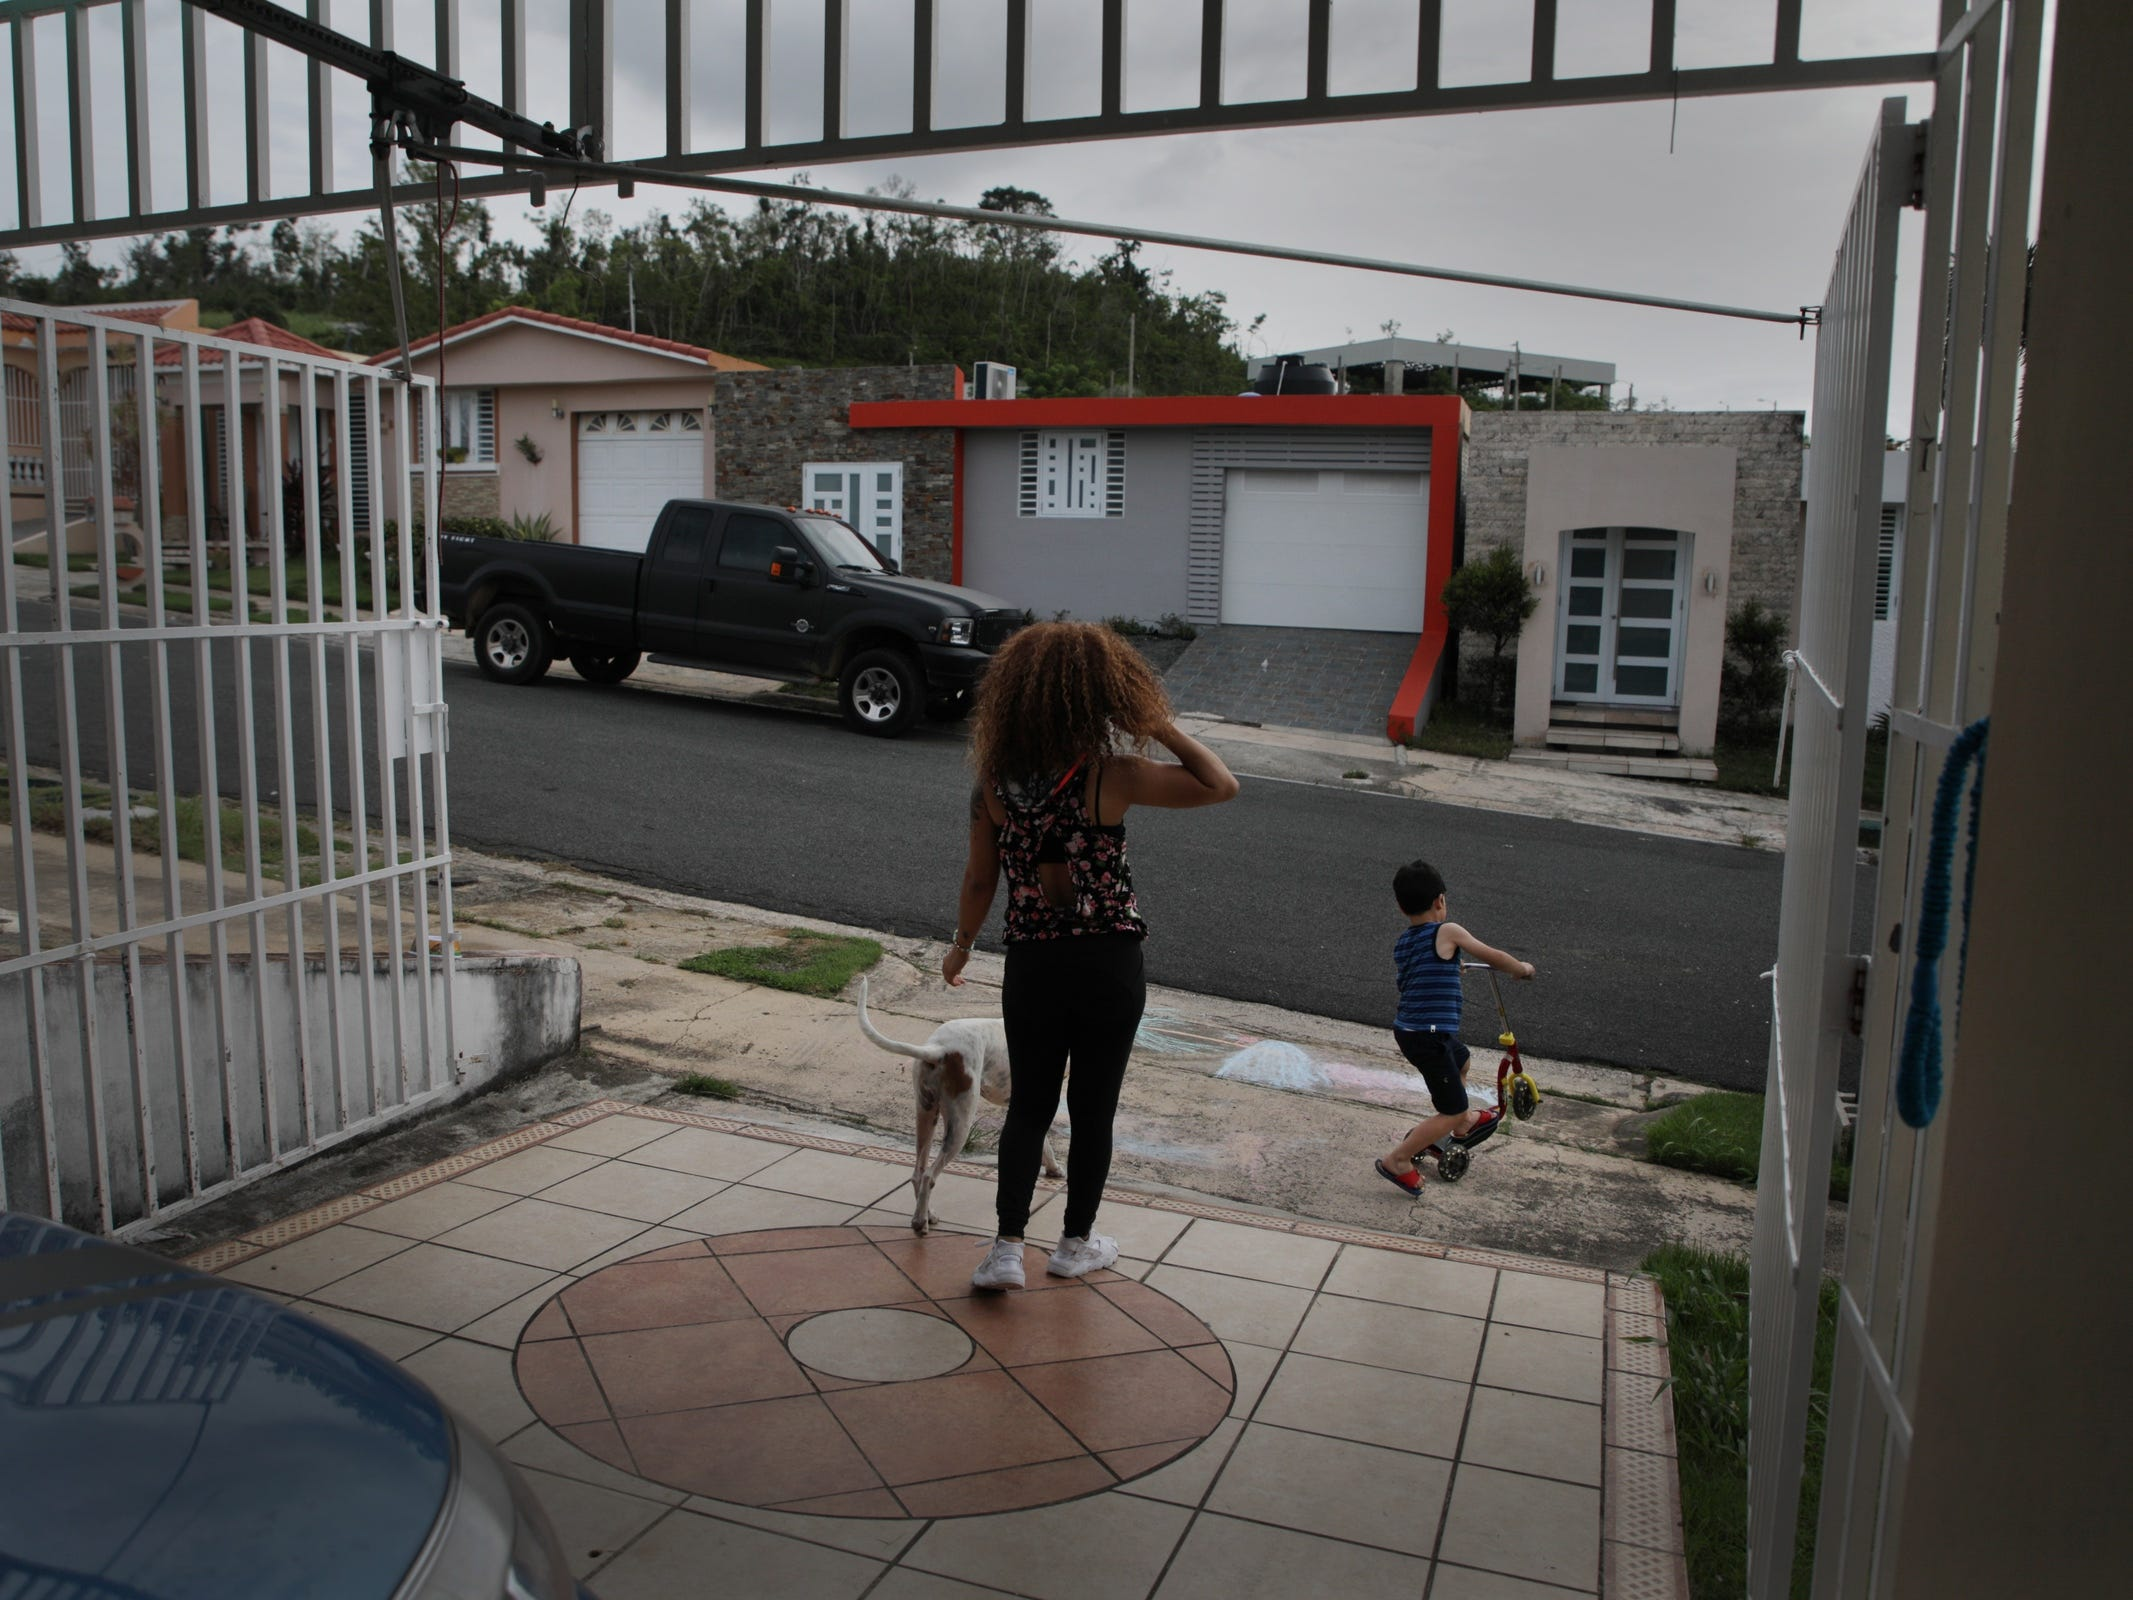 Ashlie Camilo Sosa, 20 and her 5 year old son Jonathan Diaz play outside their home in Toa Alta. Sosa and her son benefited from strong support from Proyecto Nacer, a support network for young parents supported in part by the Ford Fund.